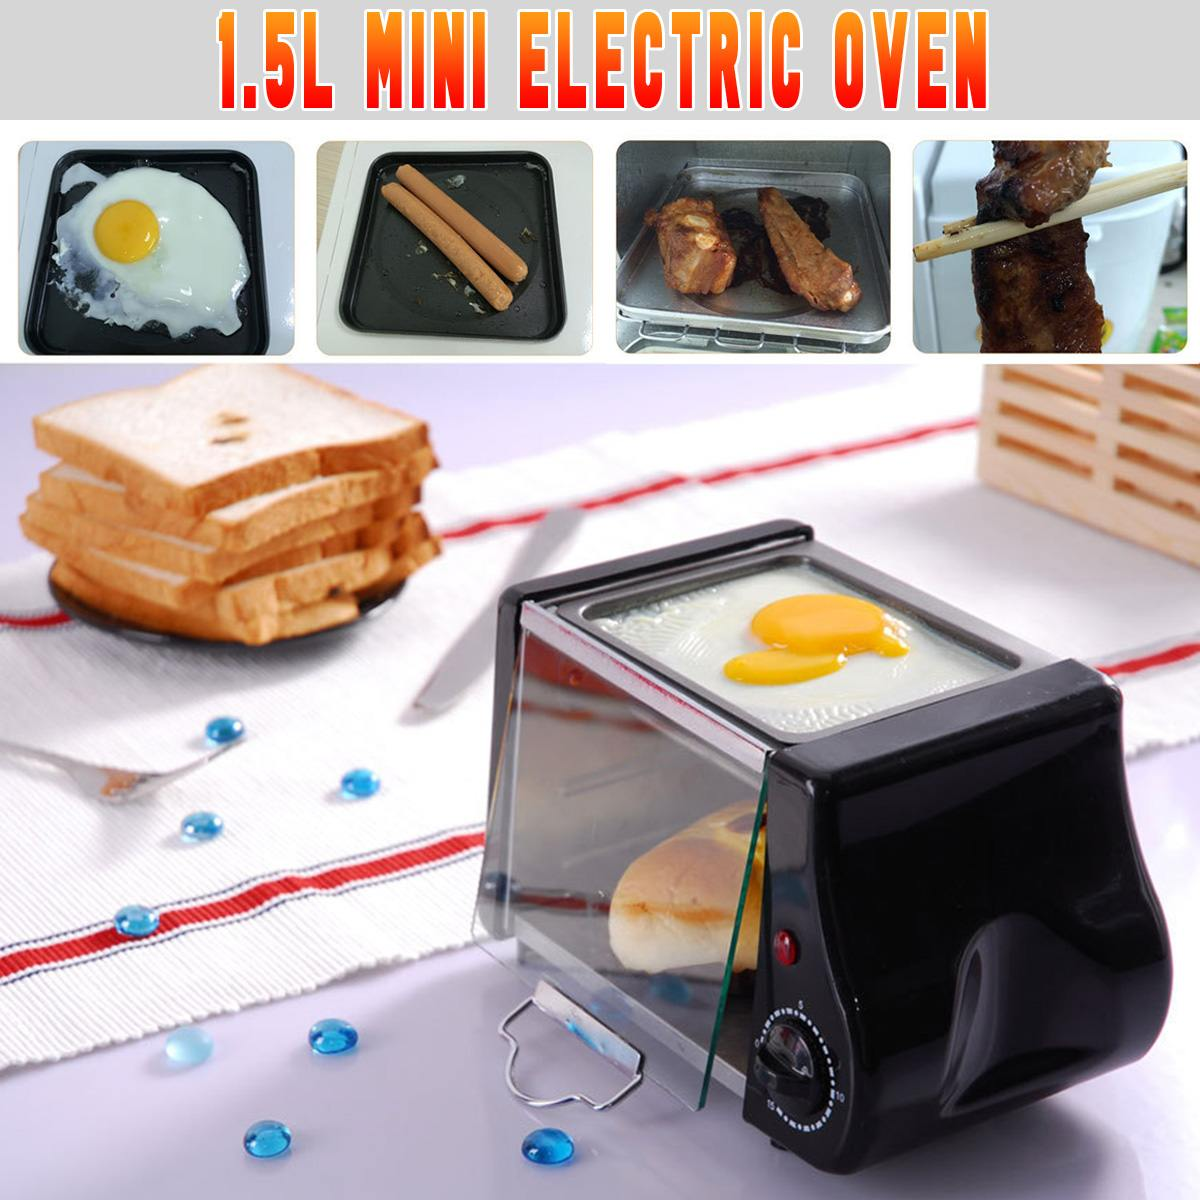 220 v/220W 2pcs Baking Pan 1.5L Mini Toaster Bread Electric Oven Baking Frying Pan Eggs Omelette Kitchen Pizzas Bread Fries Cake